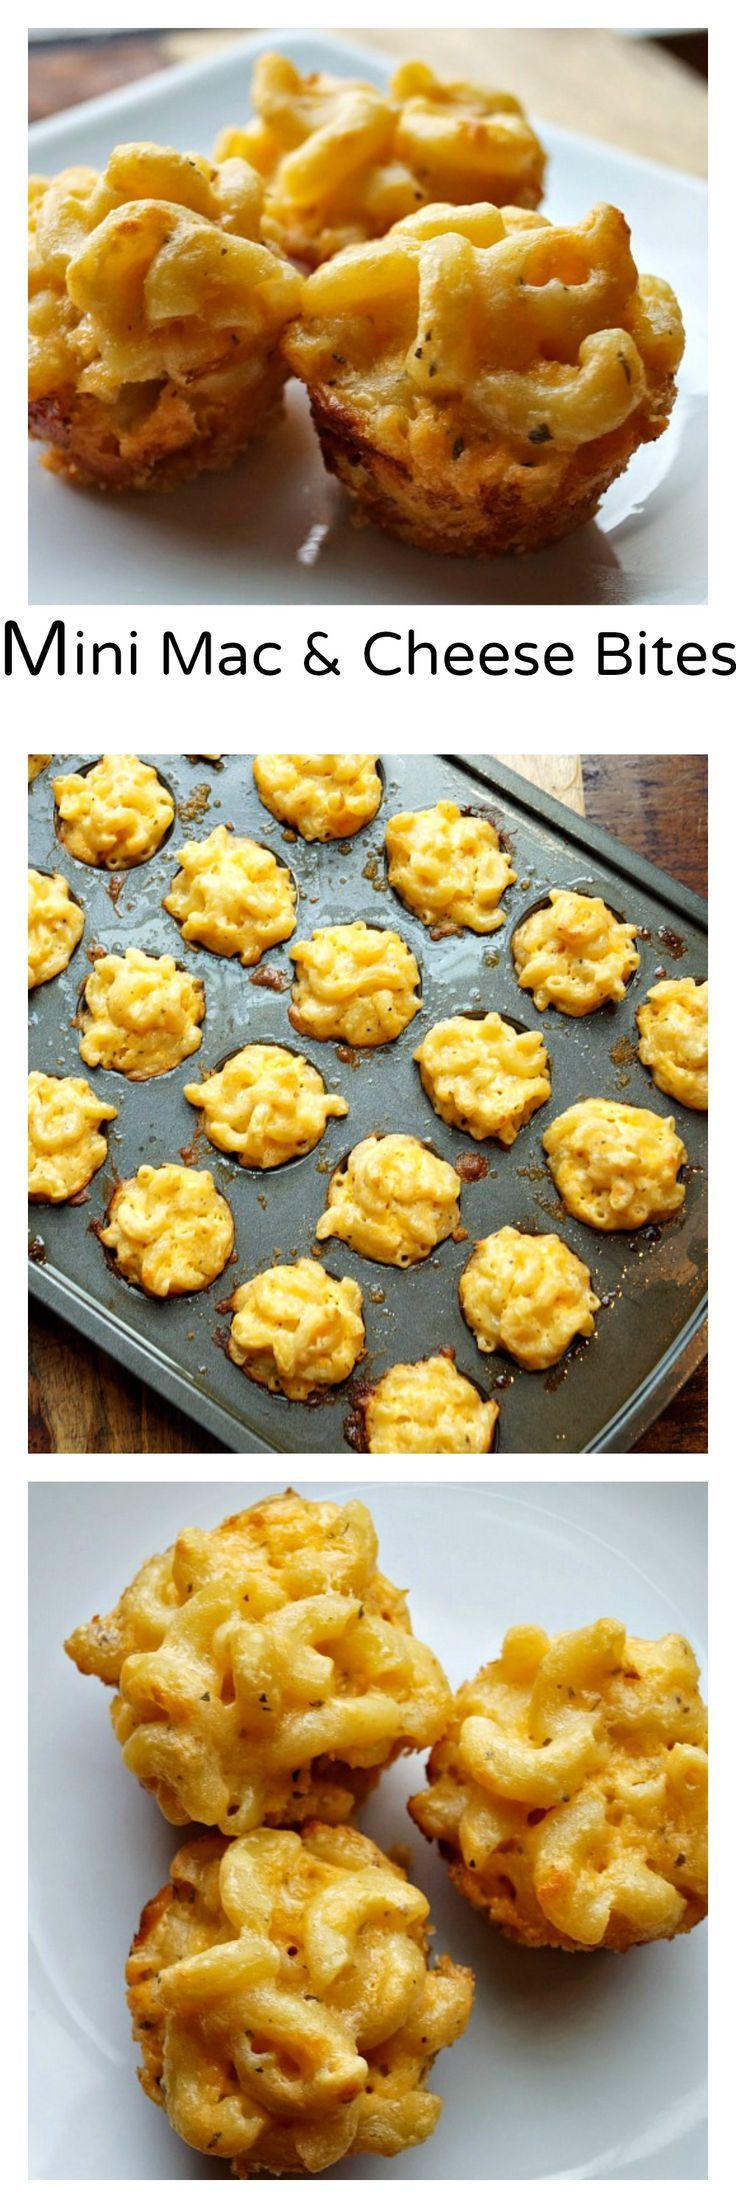 Mini Macaroni and Cheese Bites, a deliciously cheesy game day appetizer!